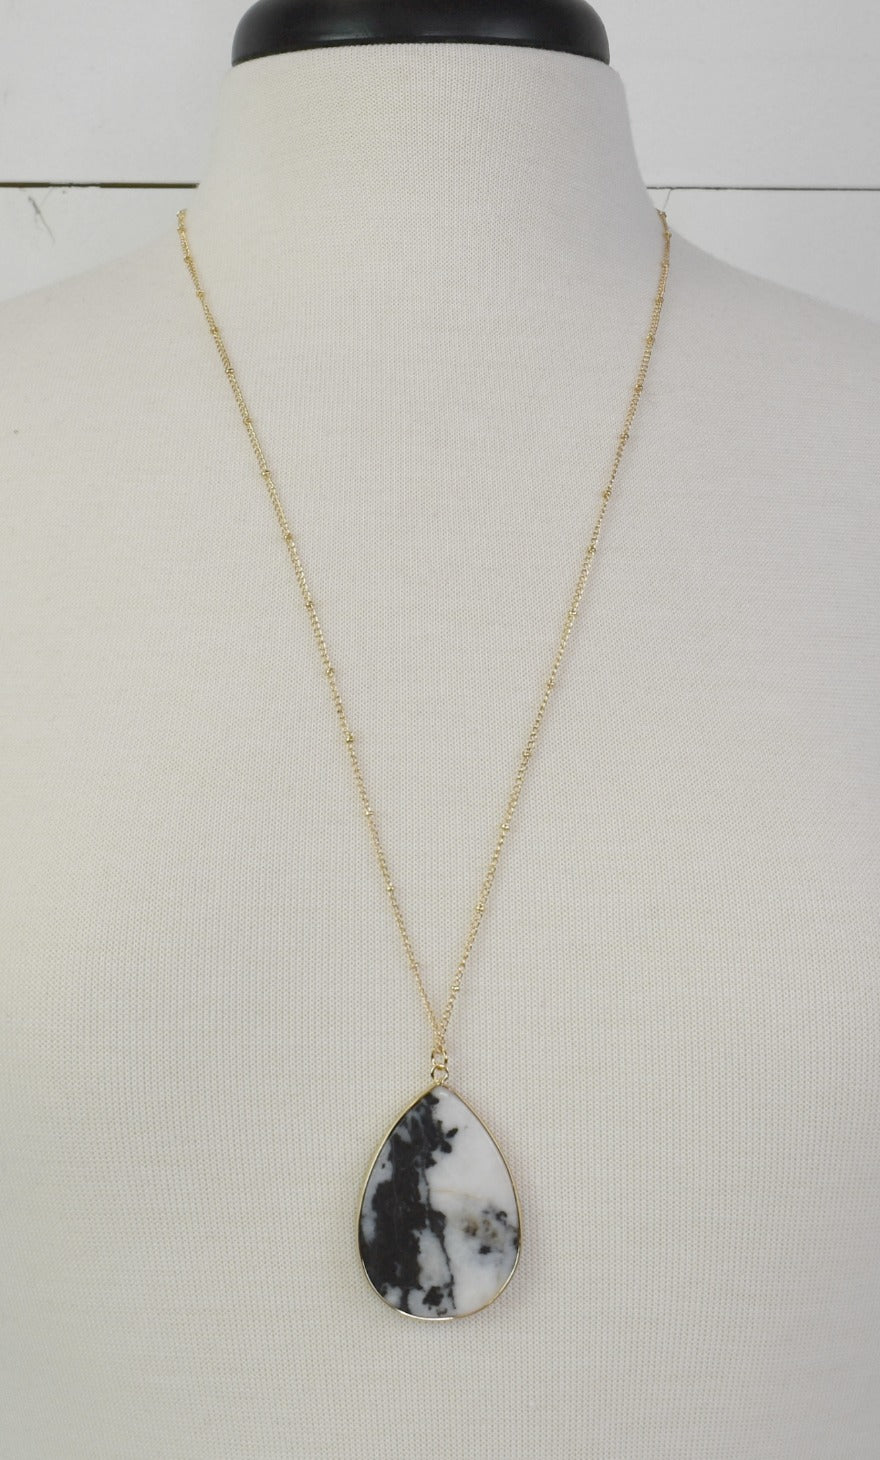 Marble Tear Drop Necklace - Black & White